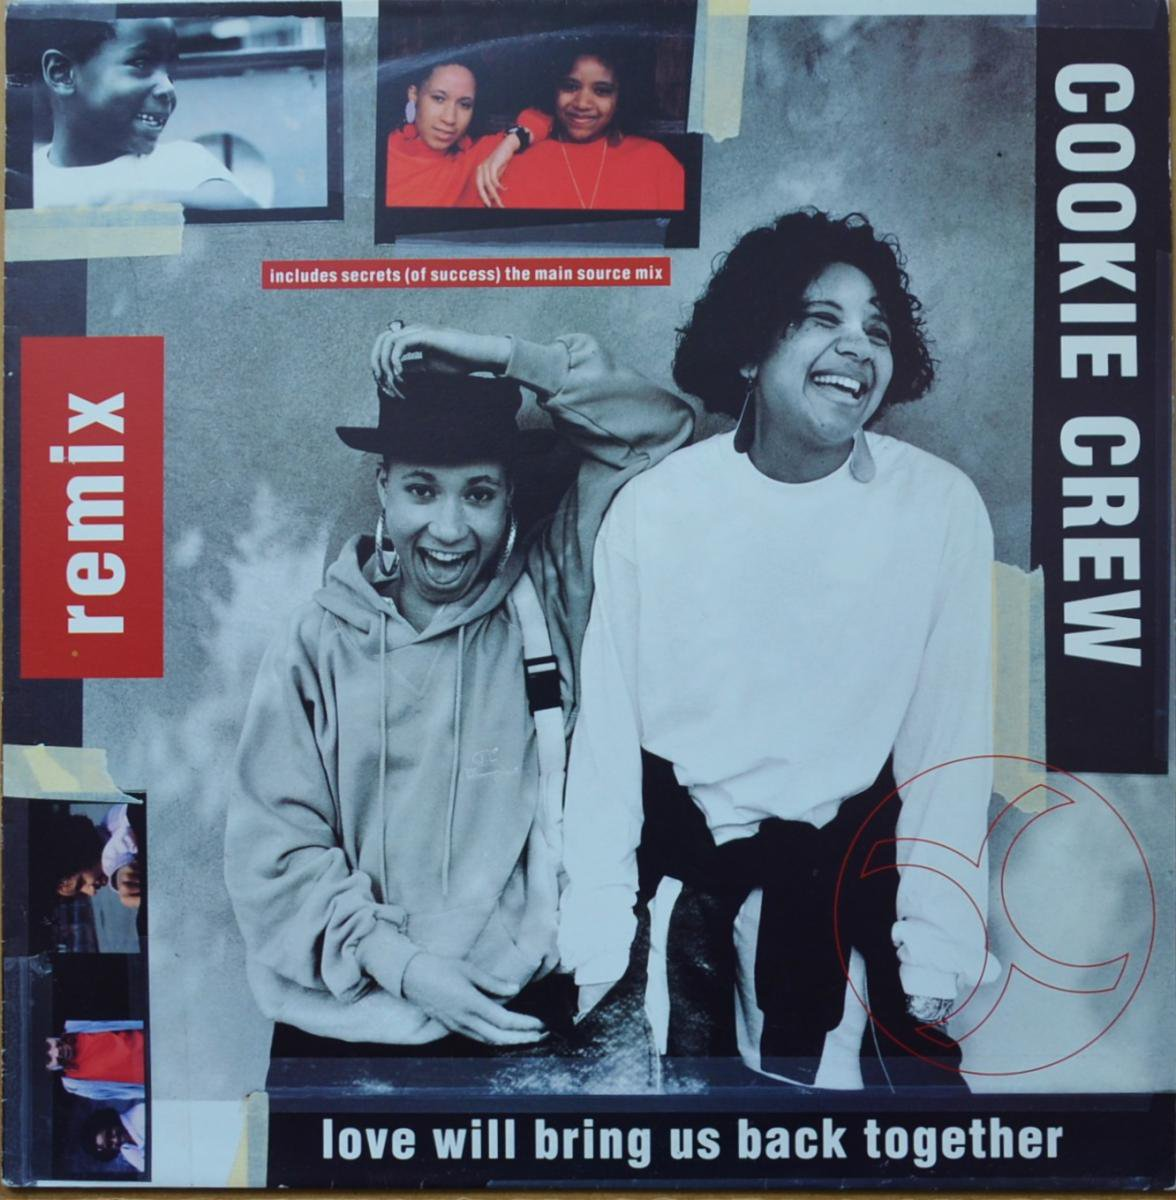 COOKIE CREW / LOVE WILL BRING US BACK TOGETHER / SECRETS (OF SUCCESS) (12